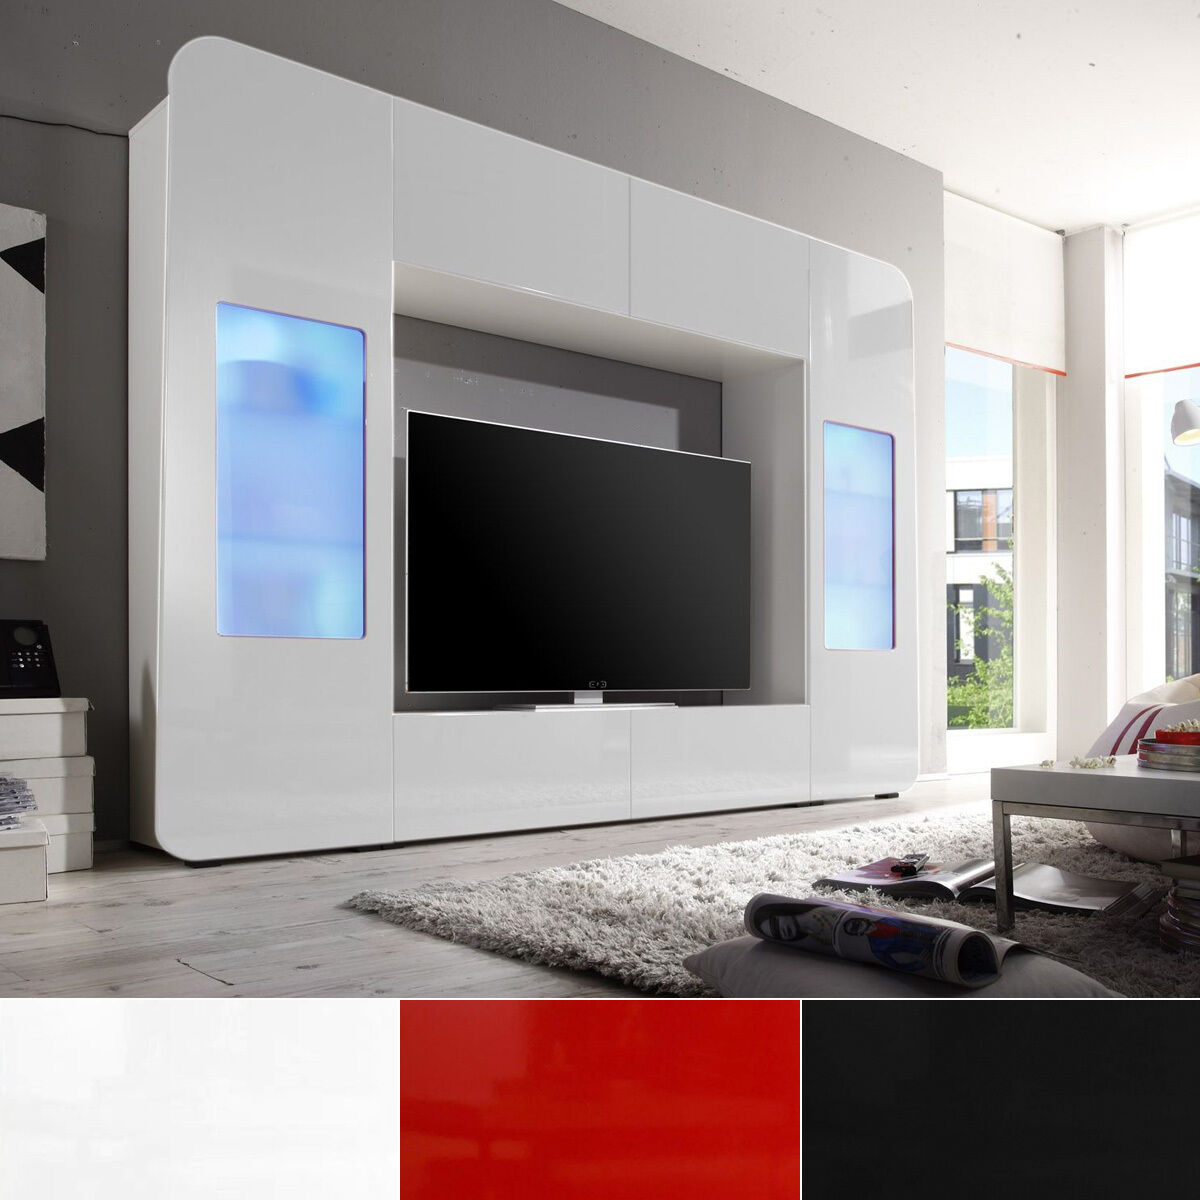 mediawand kino wohnwand anbauwand mit led in hochglanz wei rot oder schwarz eur 339 95. Black Bedroom Furniture Sets. Home Design Ideas